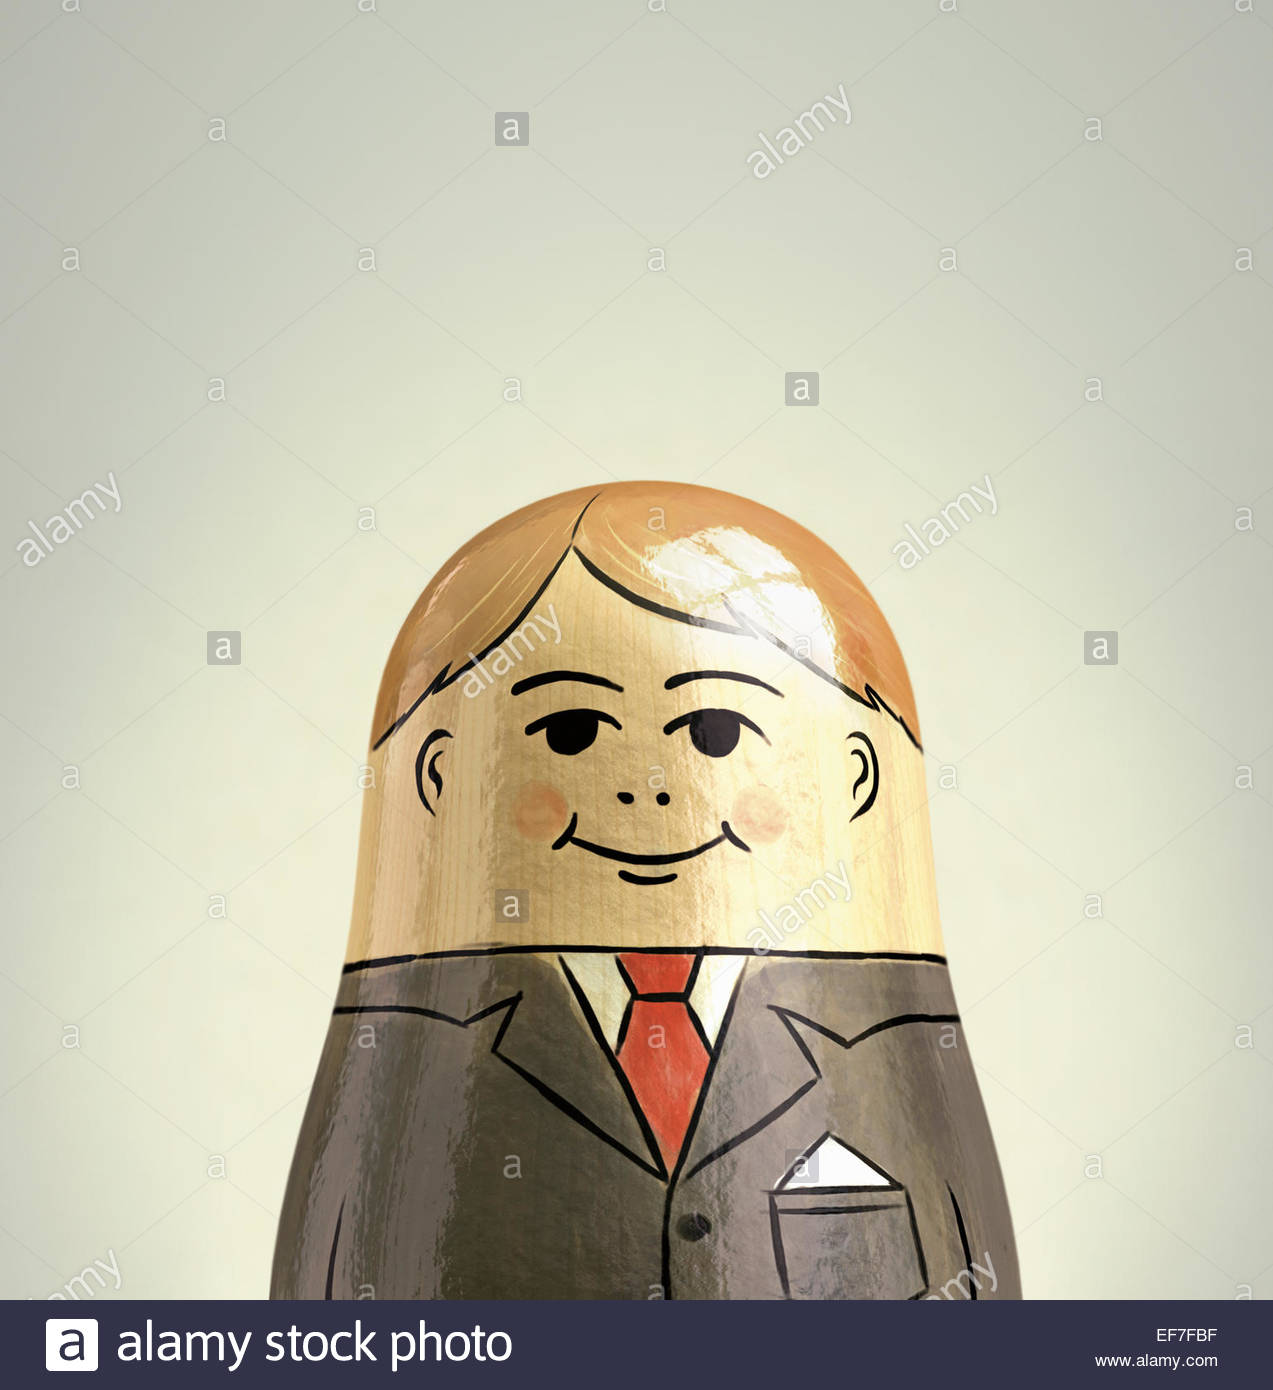 Happy, smiling businessman nesting doll - Stock Image